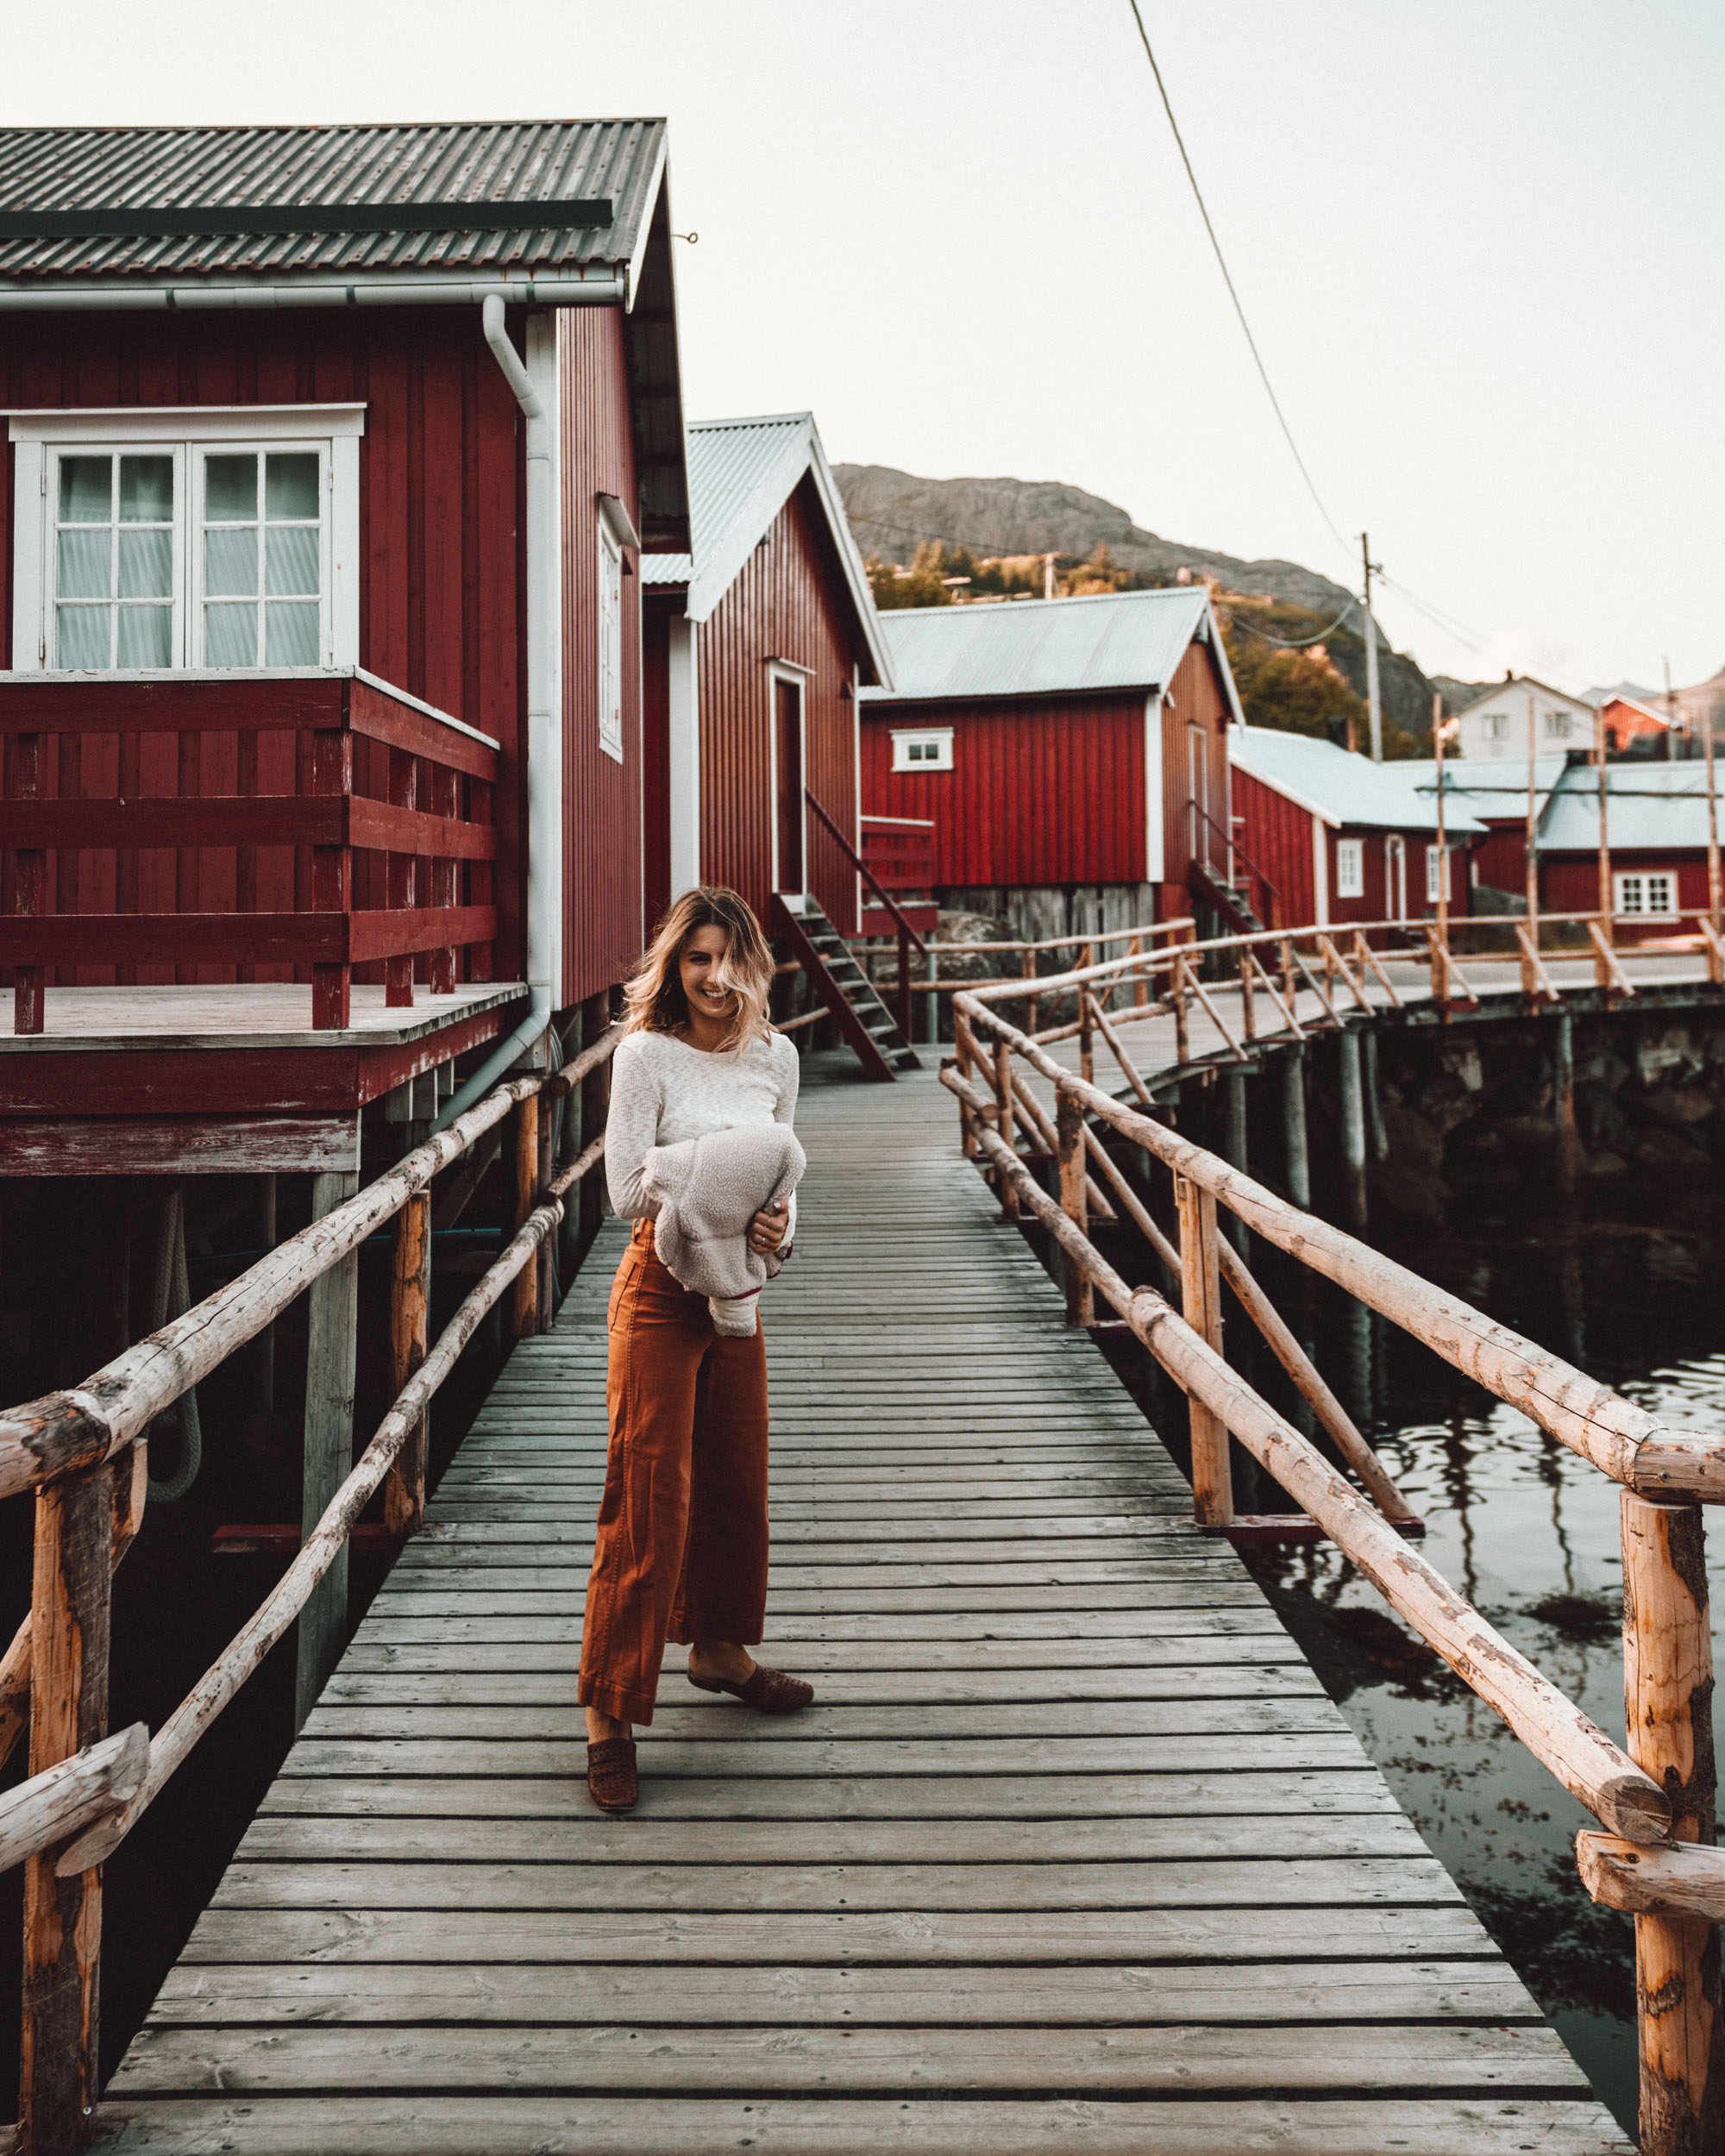 Lofoten Hotel in Norway Nusfjord Arctic Resort Traditional Fishermen Red Cabin with a Fjord View - Find Us Lost